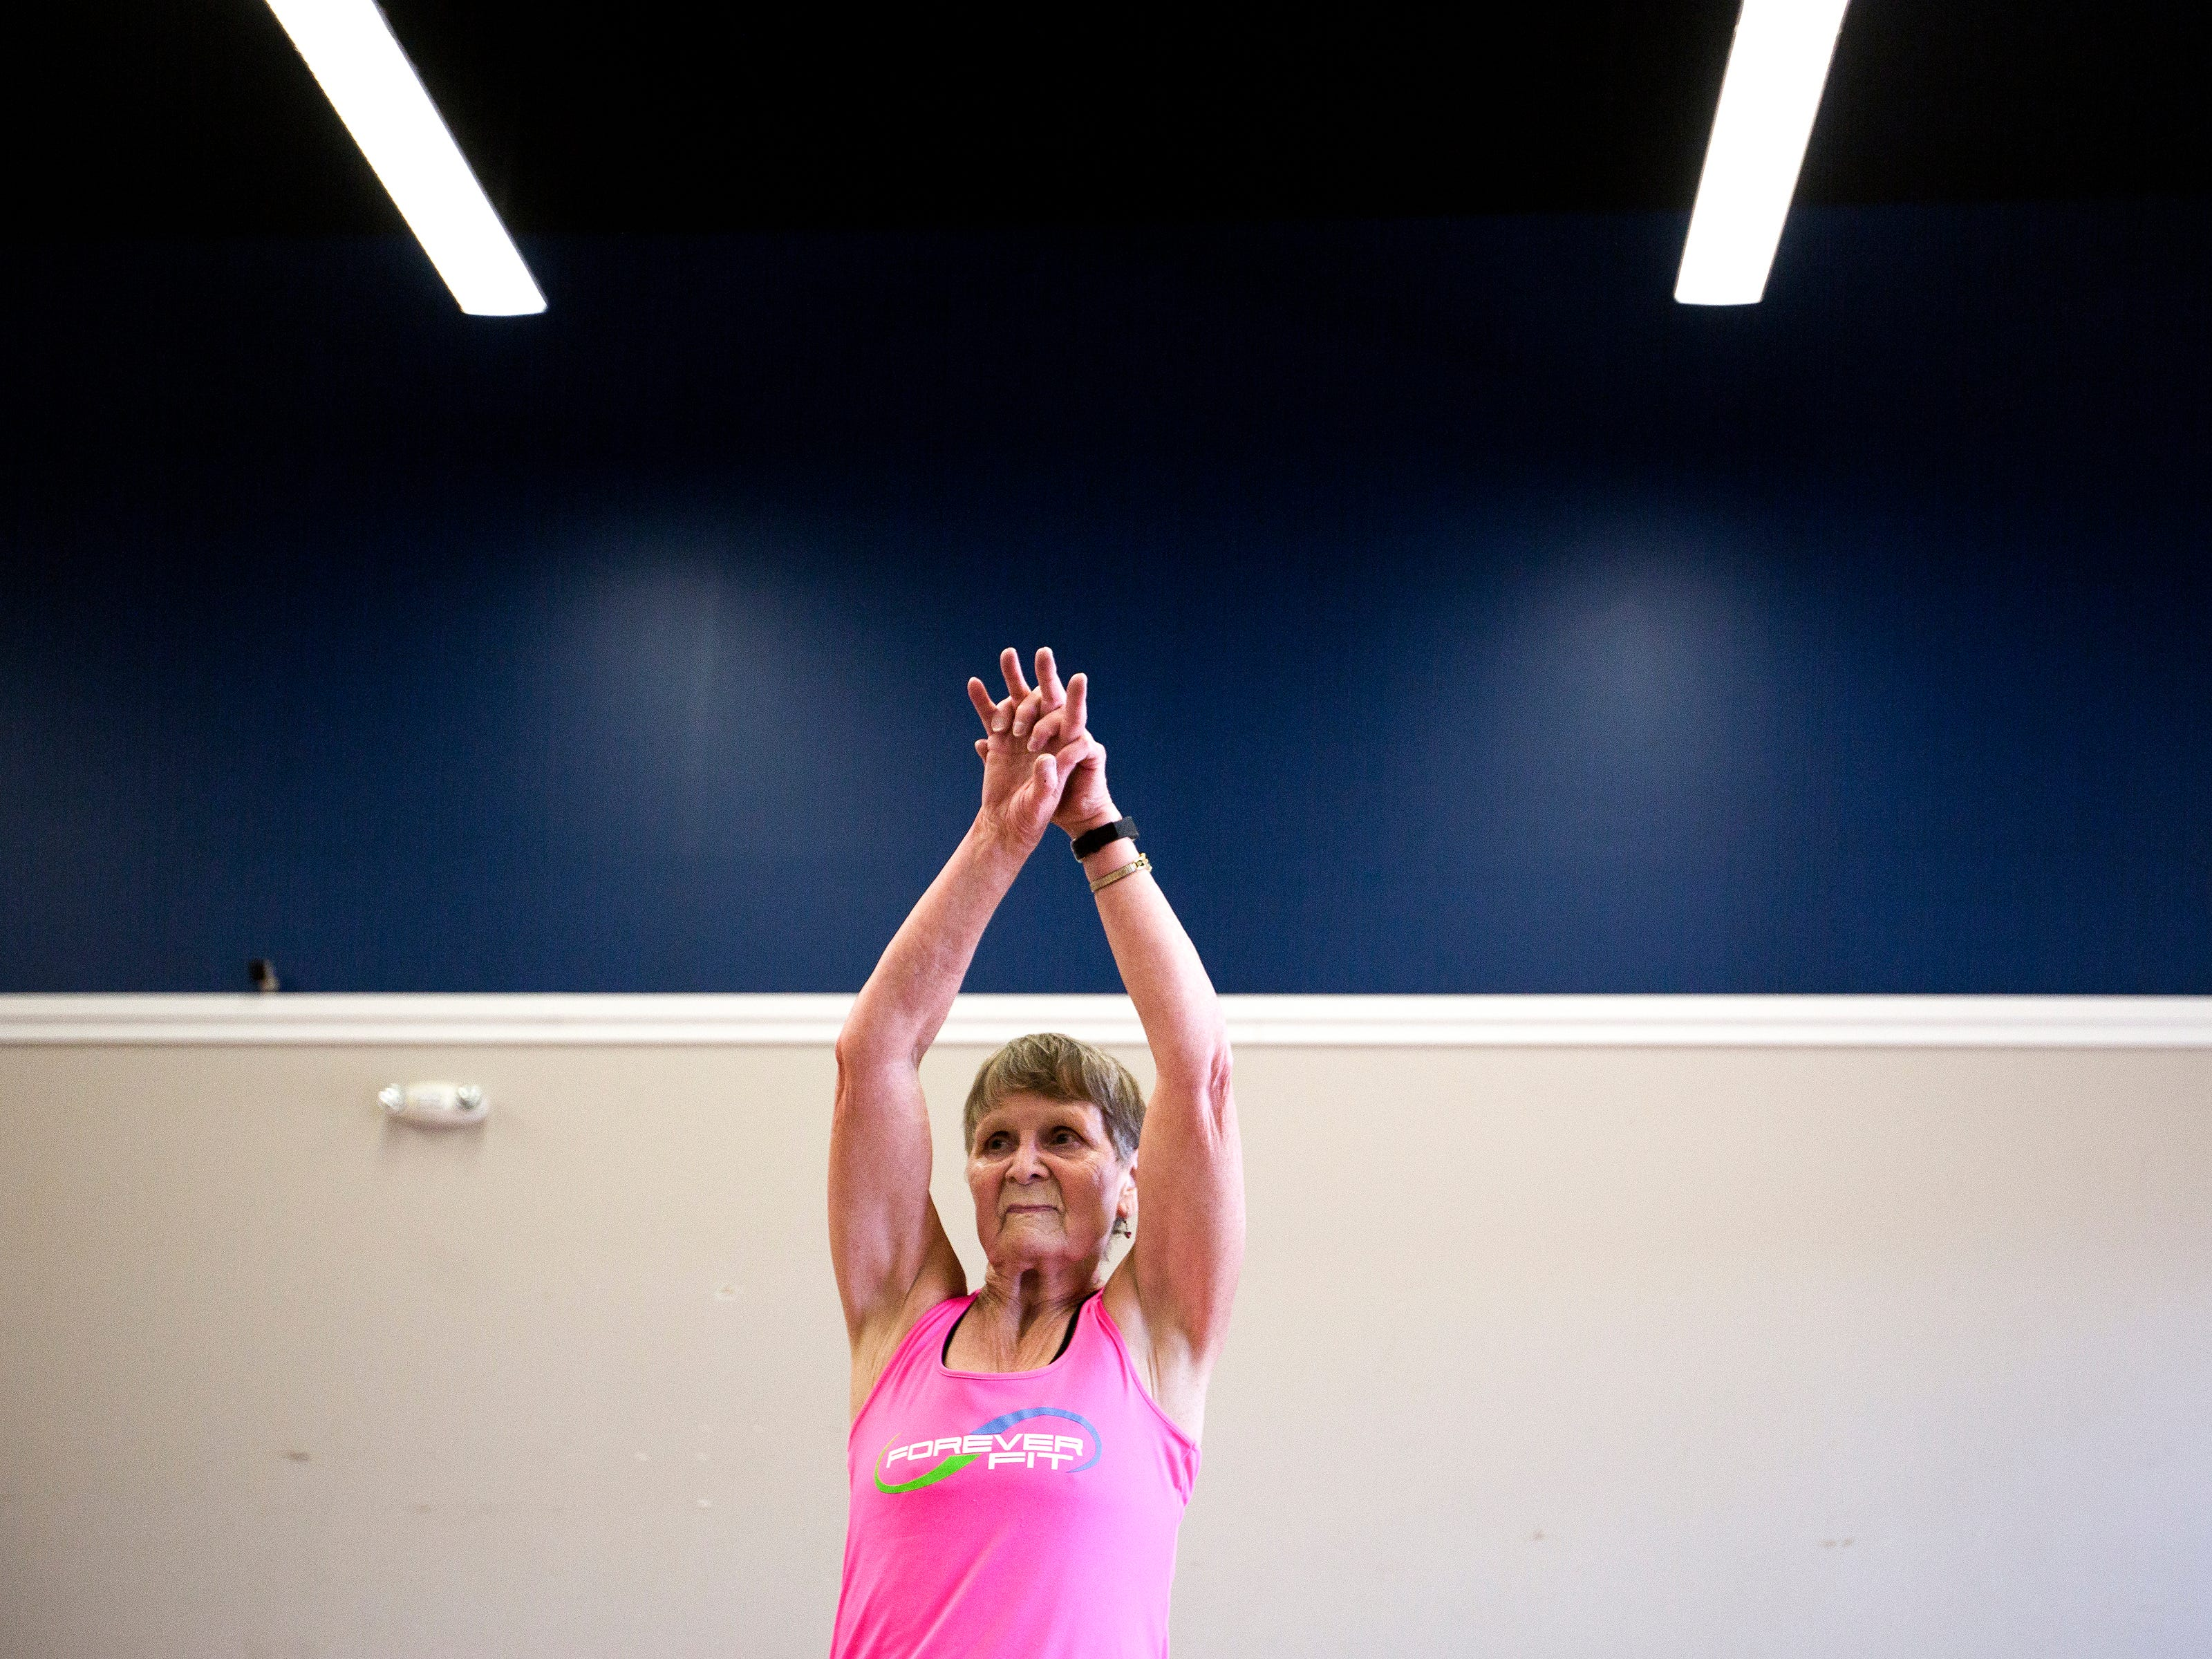 Betty Lou Sweeney stretches before an interval training workout at Forever Fit in Plover, Wis., September 12, 2018.